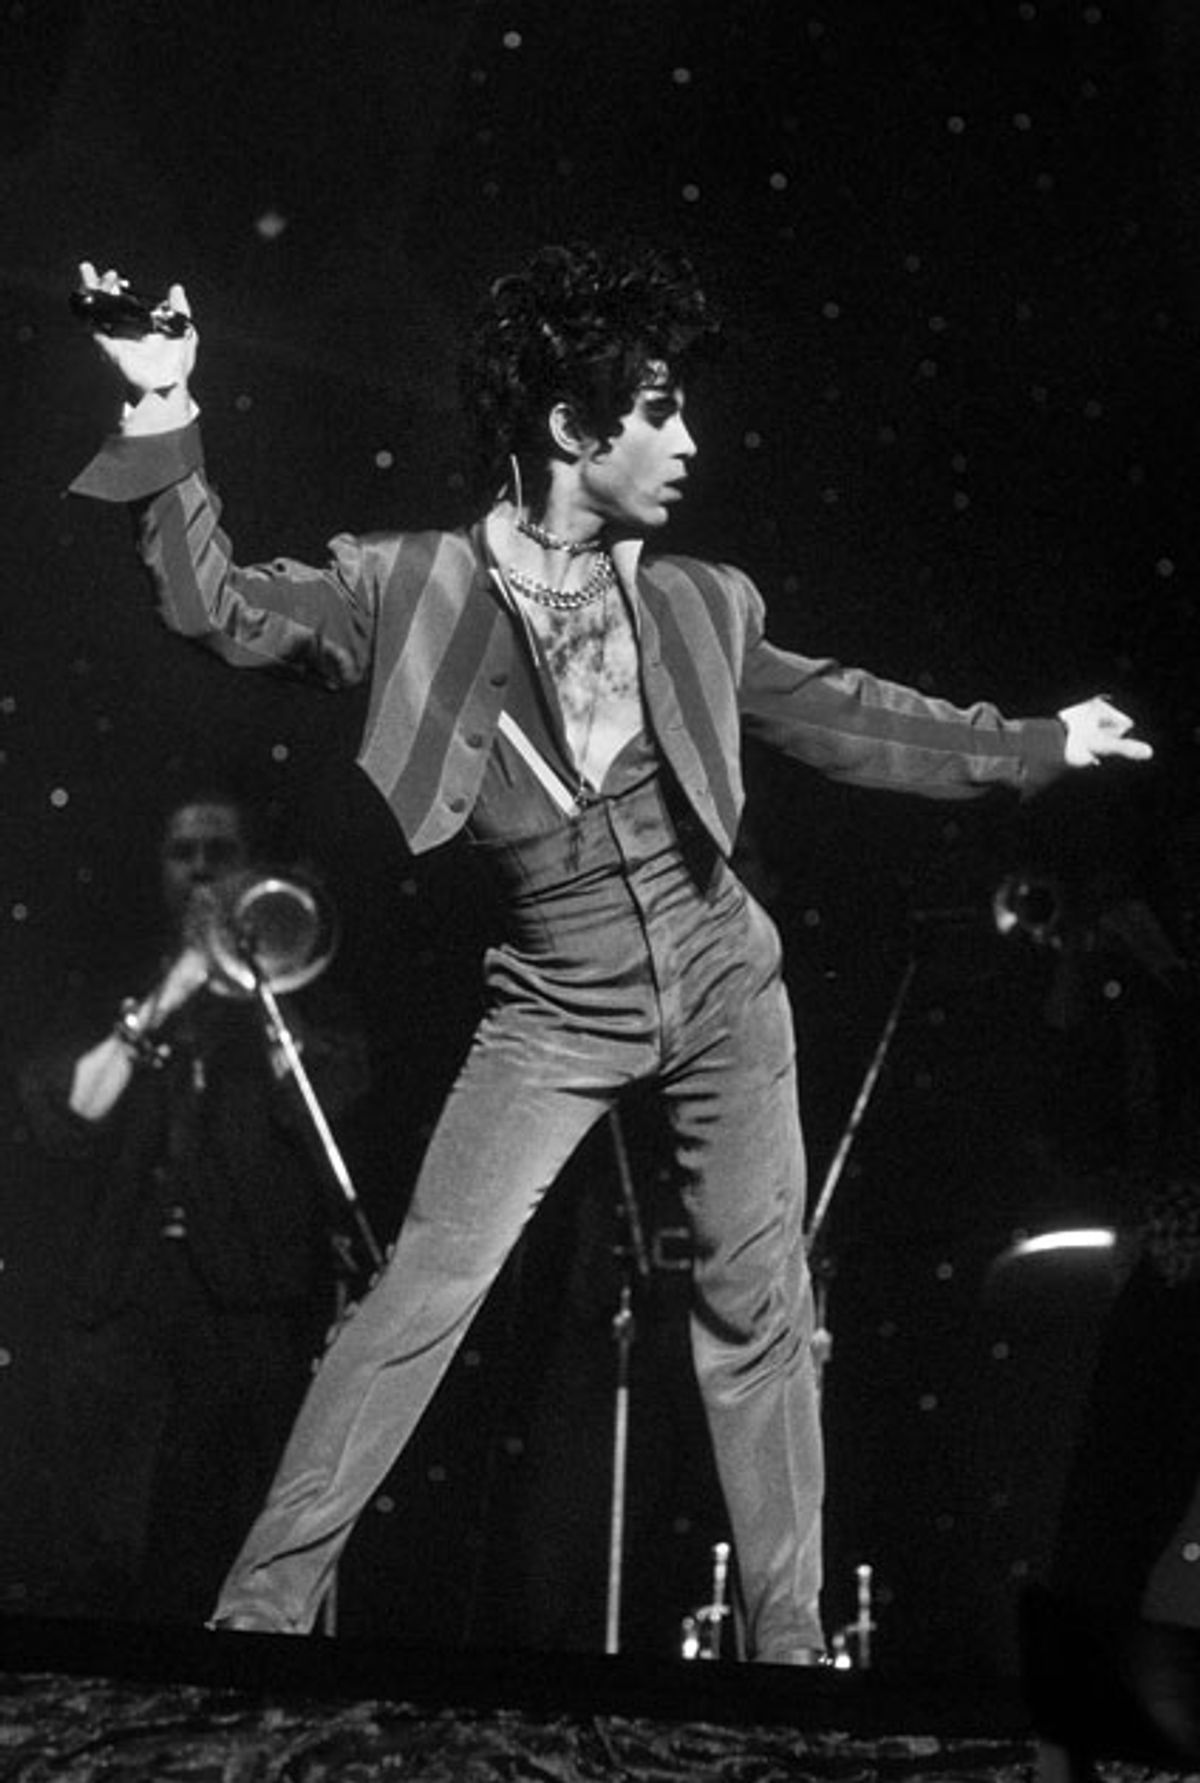 On Bass: The Lowdown on Prince's Low End